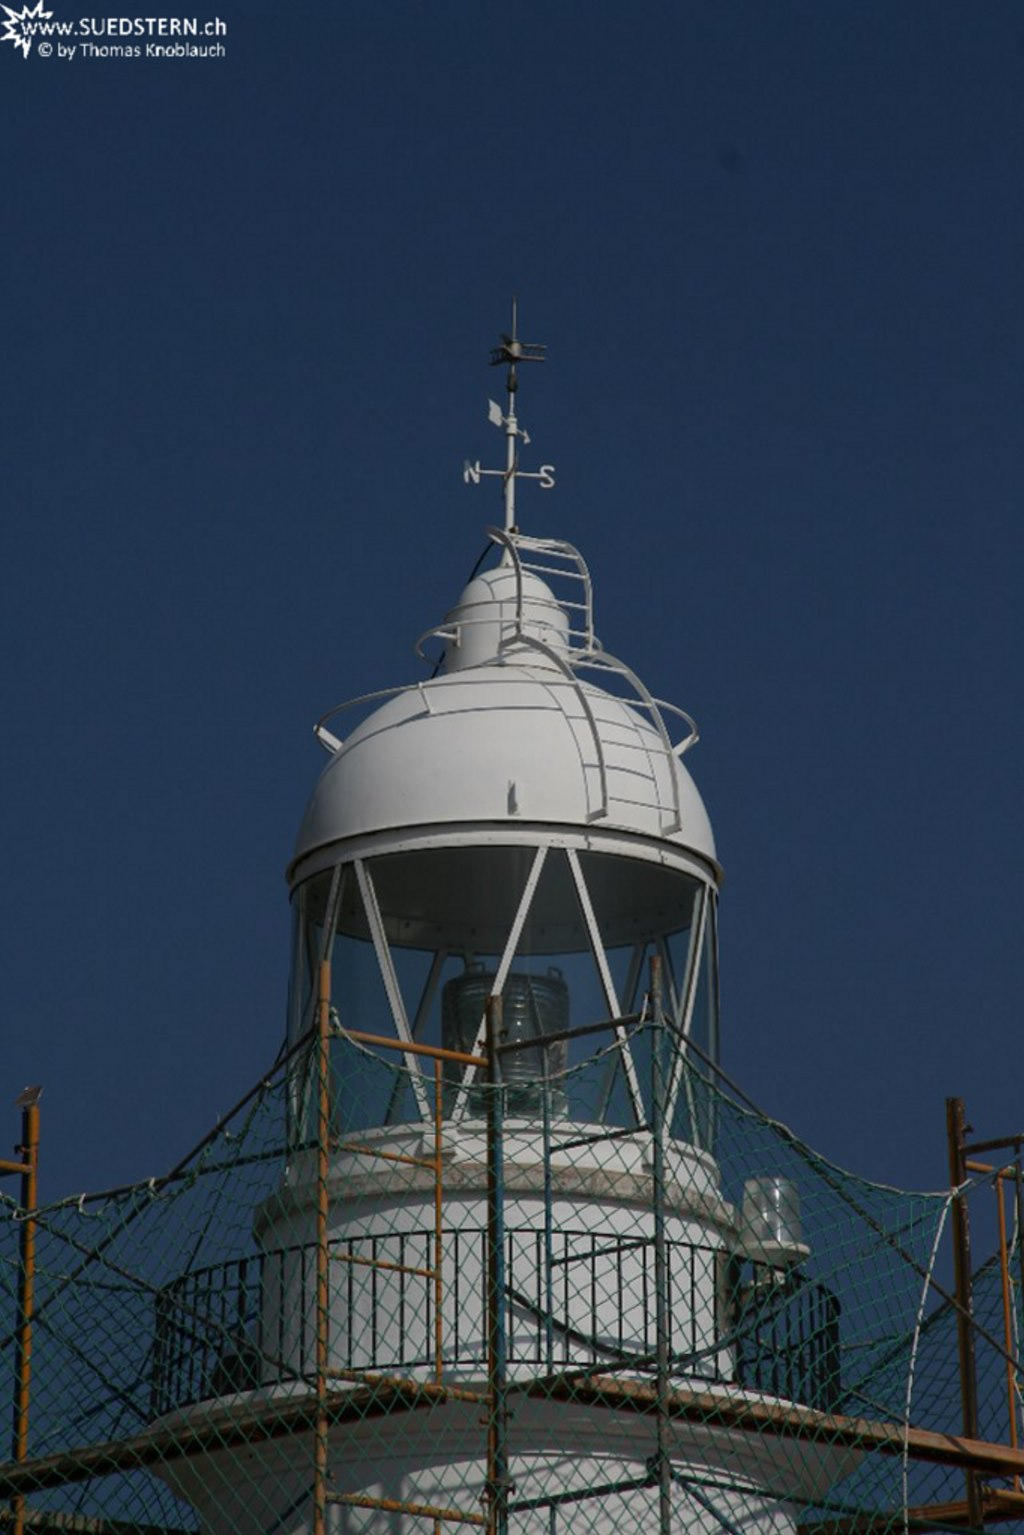 Foto playa Els Palangrers / Segon Moll. 2008-09-03 - Lighthouse close up in Rosses, spain